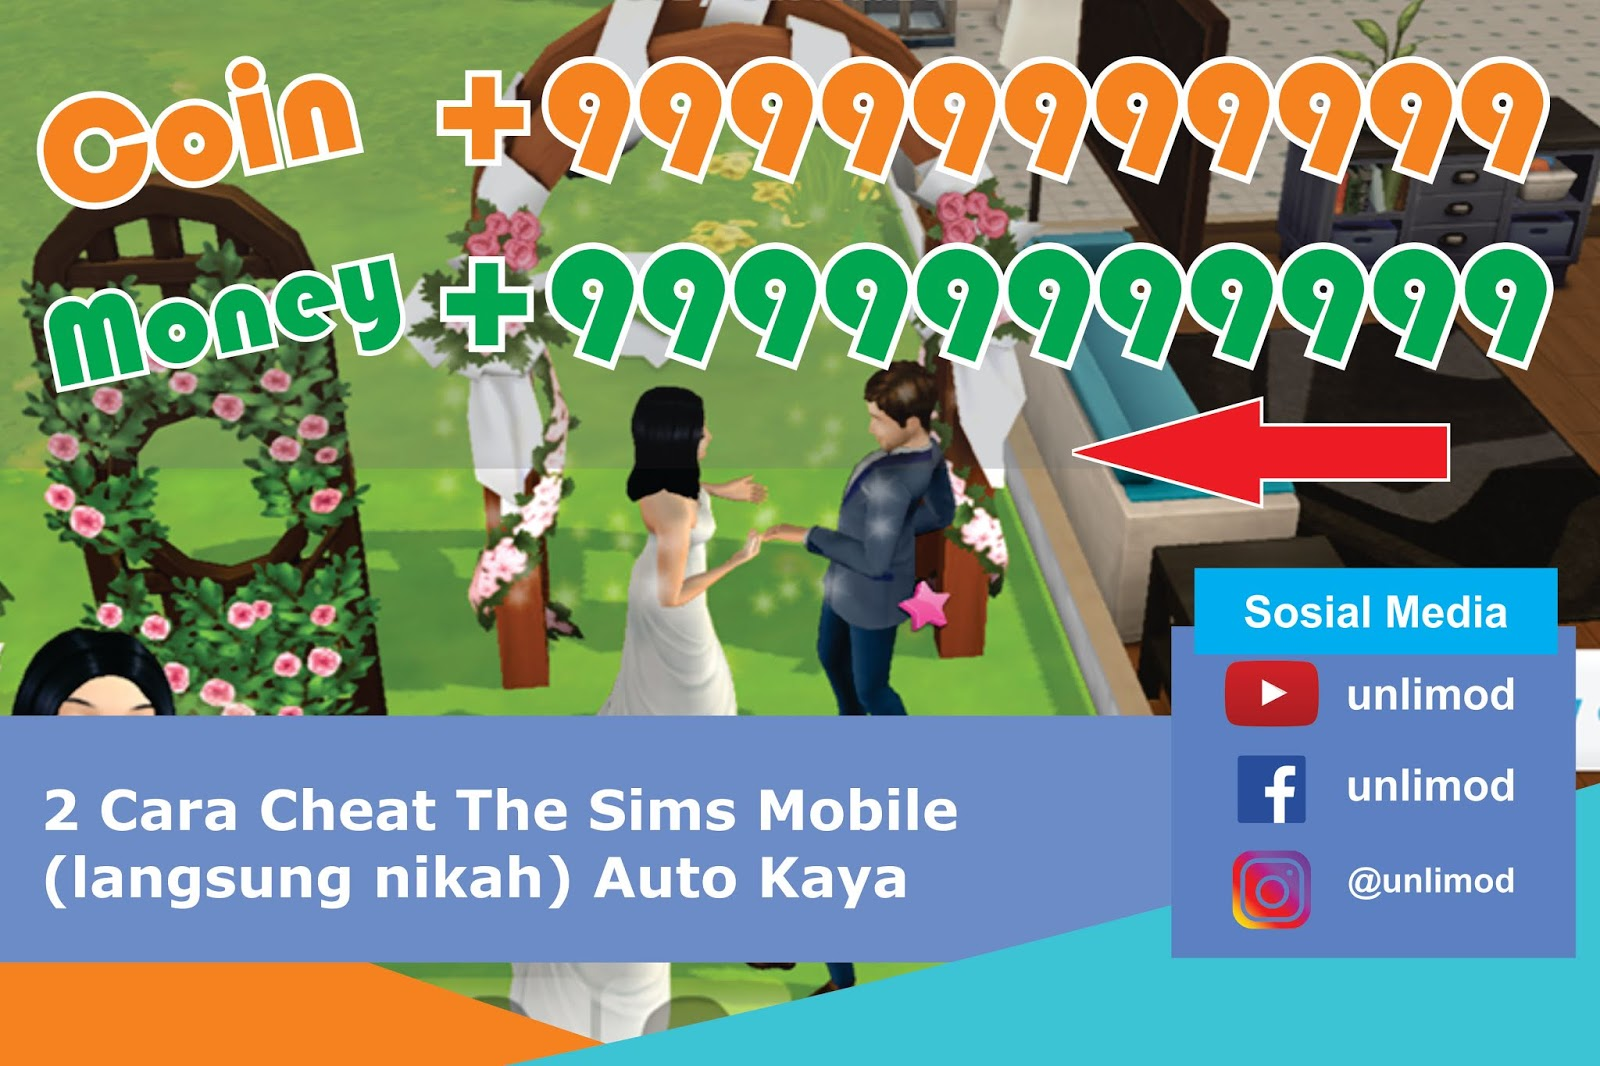 cheat the sims mobile.